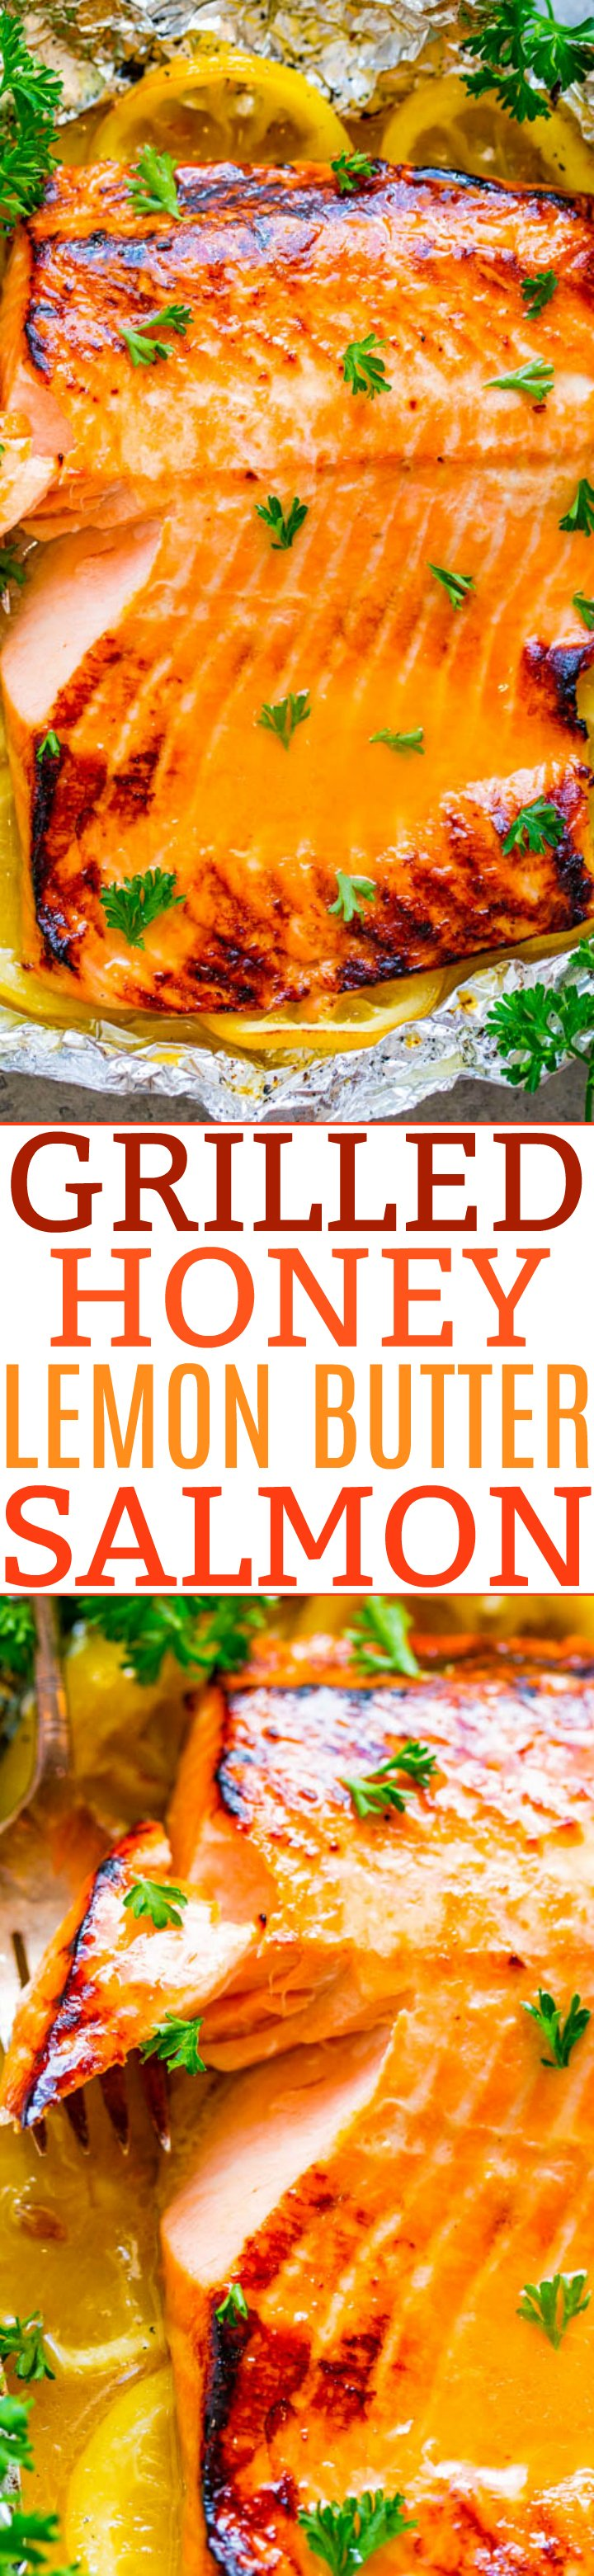 Grilled Honey Lemon Butter Salmon - EASY, ready in 10 minutes, and a FOOLPROOF way to make grilled salmon!! Wonderfully tender, so juicy, just melts in your mouth, and has FABULOUS flavor!!